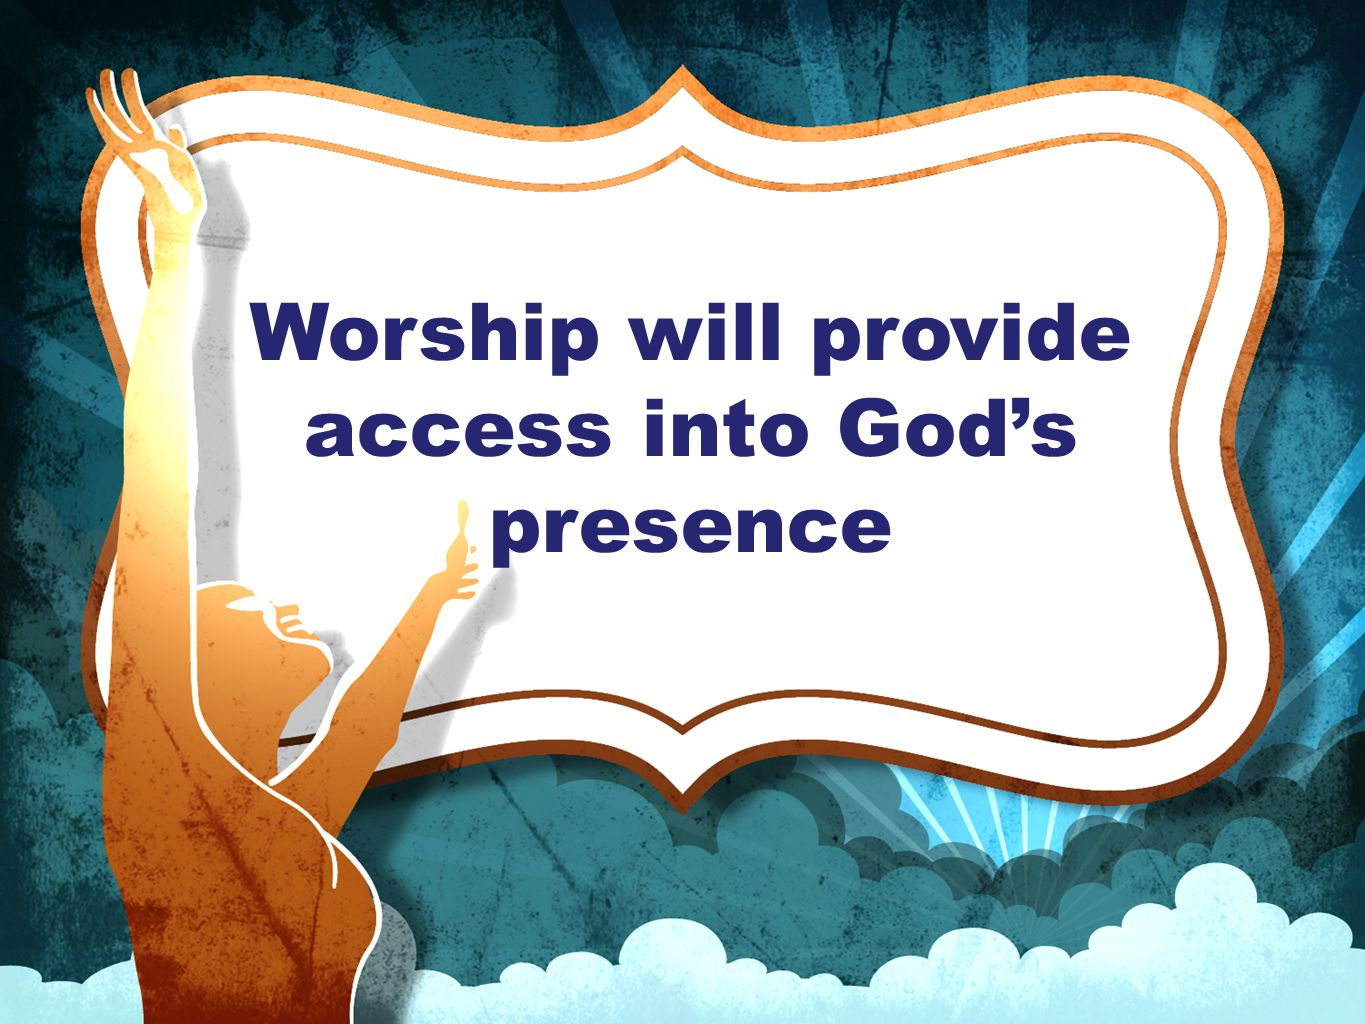 Worship will provide access into God's presence